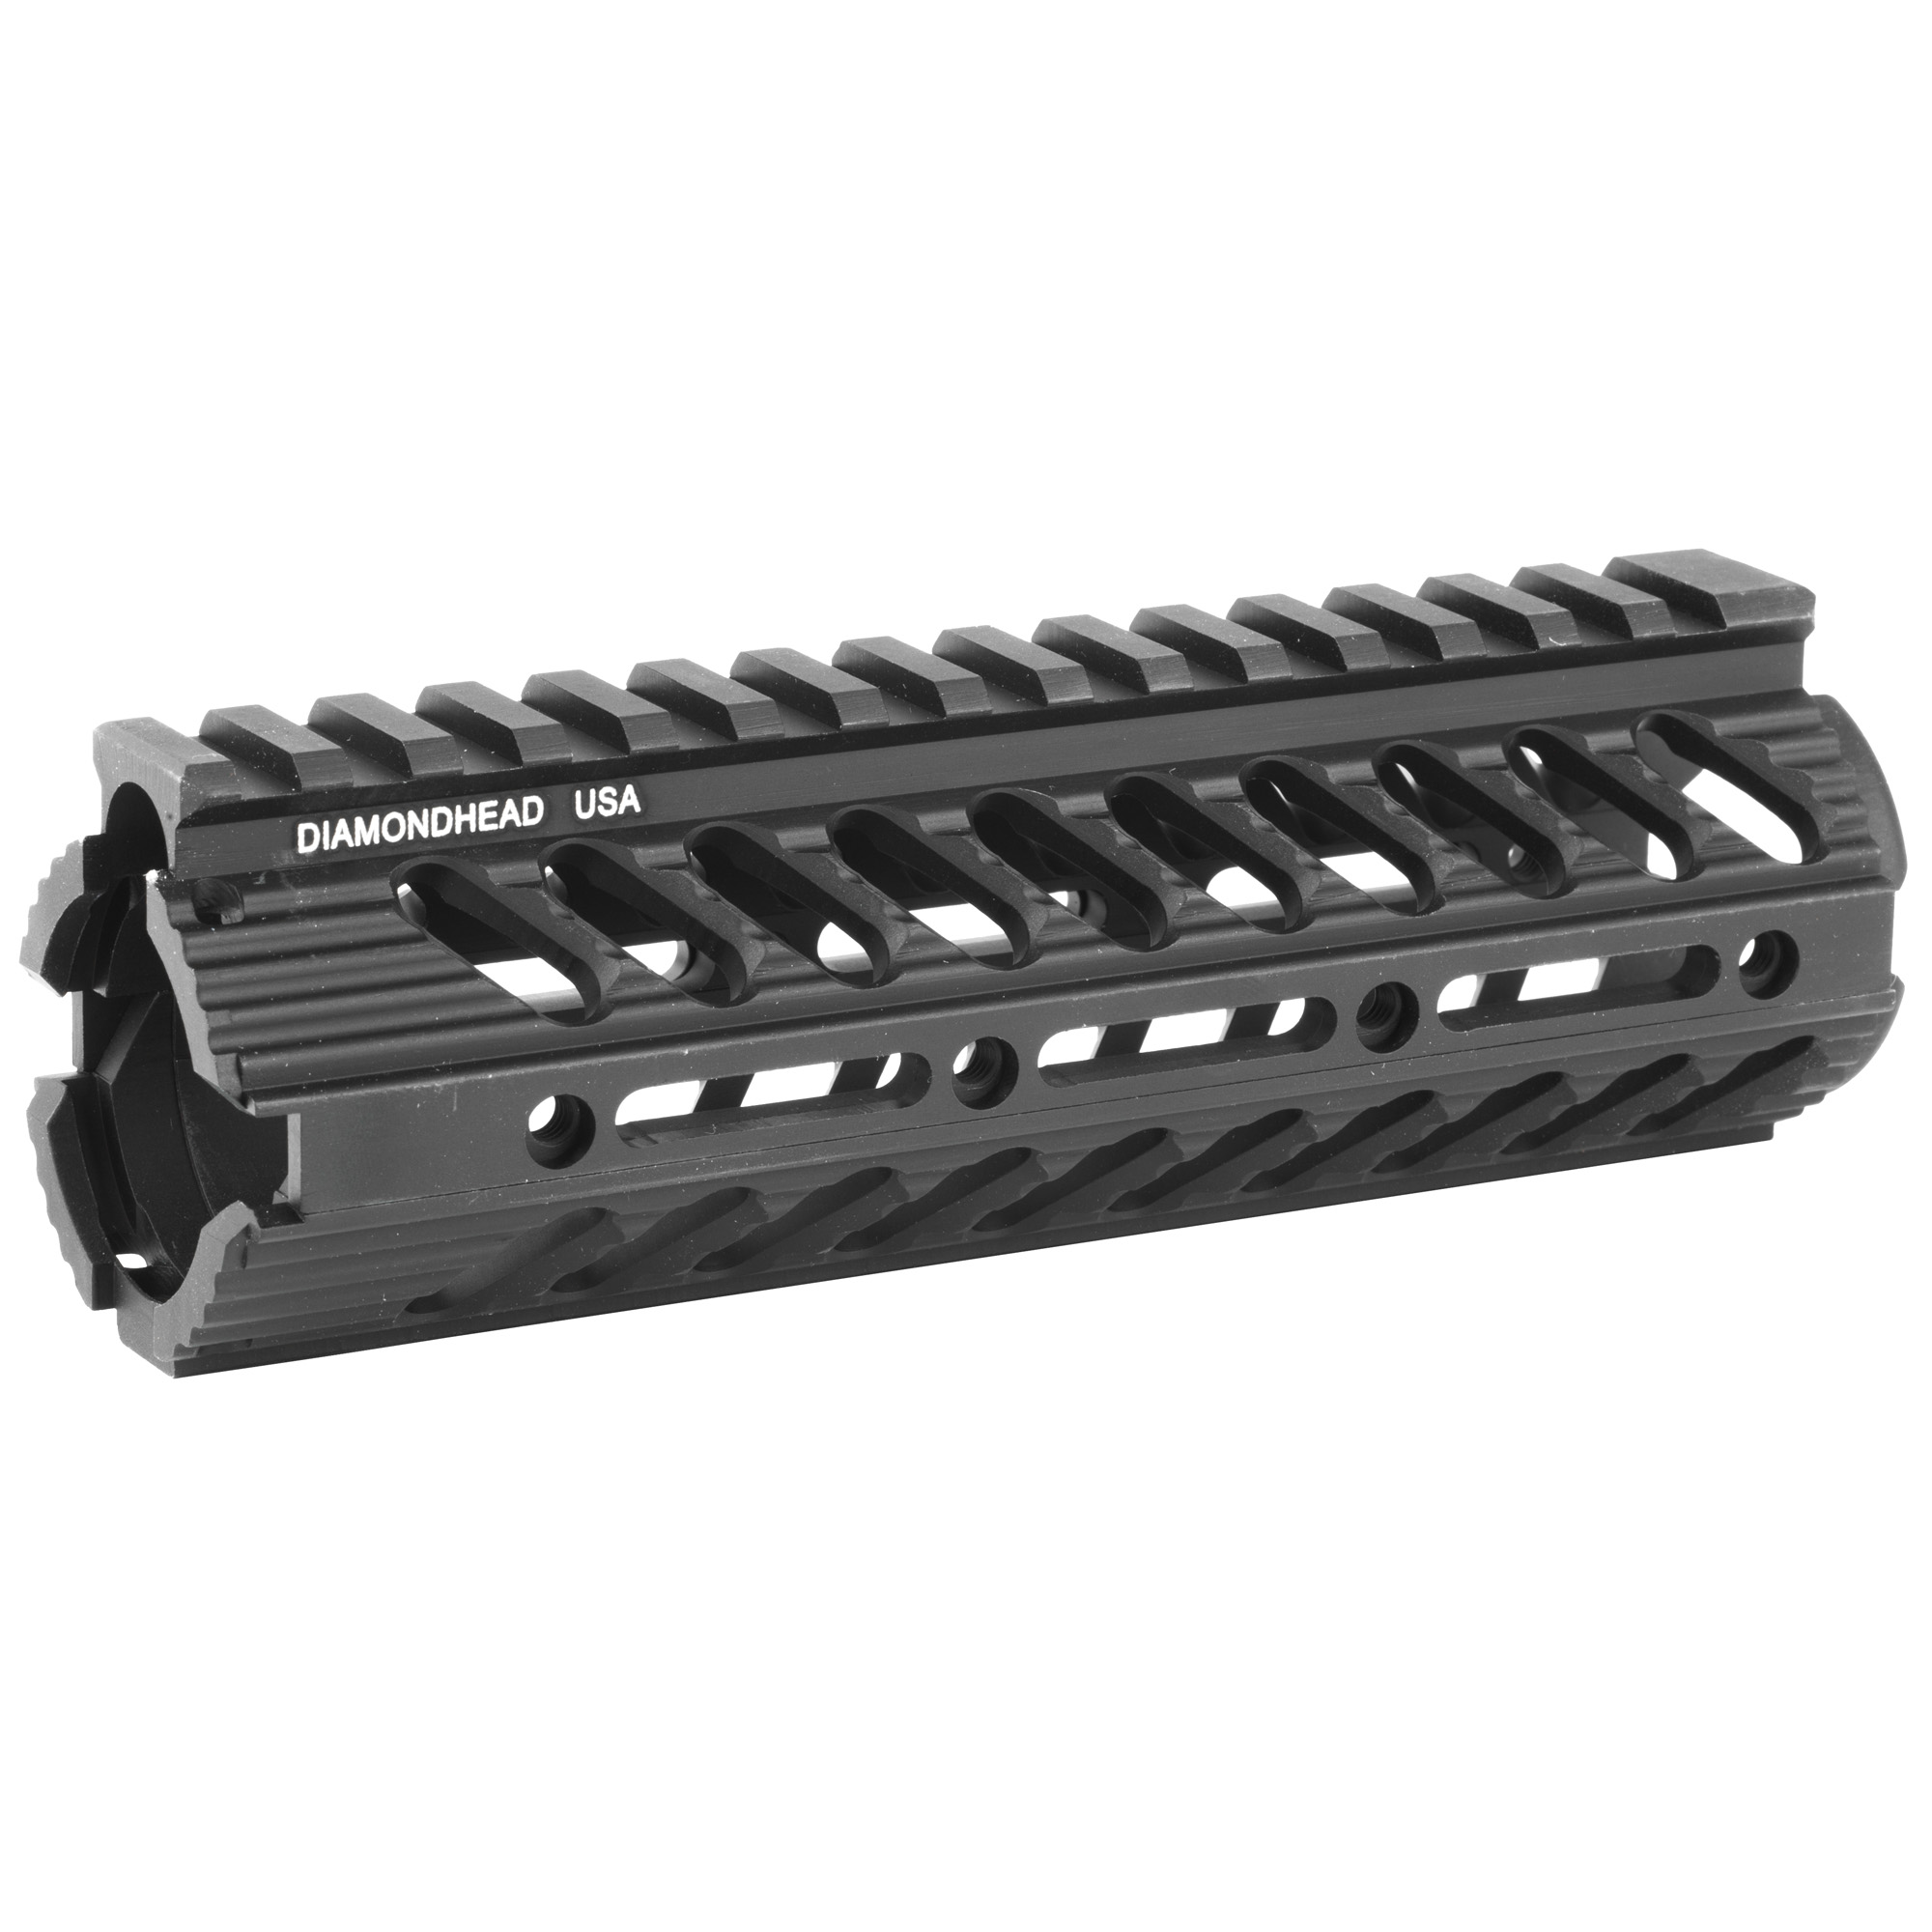 """Diamondhead's VRS DI 7"""" Modular Drop-In Handguard Rail offers excellent fore-end versatility for the M4/AR15 platform. With fast installation and almost limitless configurations for accessories"""" the VRS-DI sets a new standard for drop-in rail systems. The VRS-DI 7"""" Drop-In Handguard is offered standard on the top-selling STAG Arms Model 3. NOTE: The VRS-DI is not recommended as an optics or sight platform."""